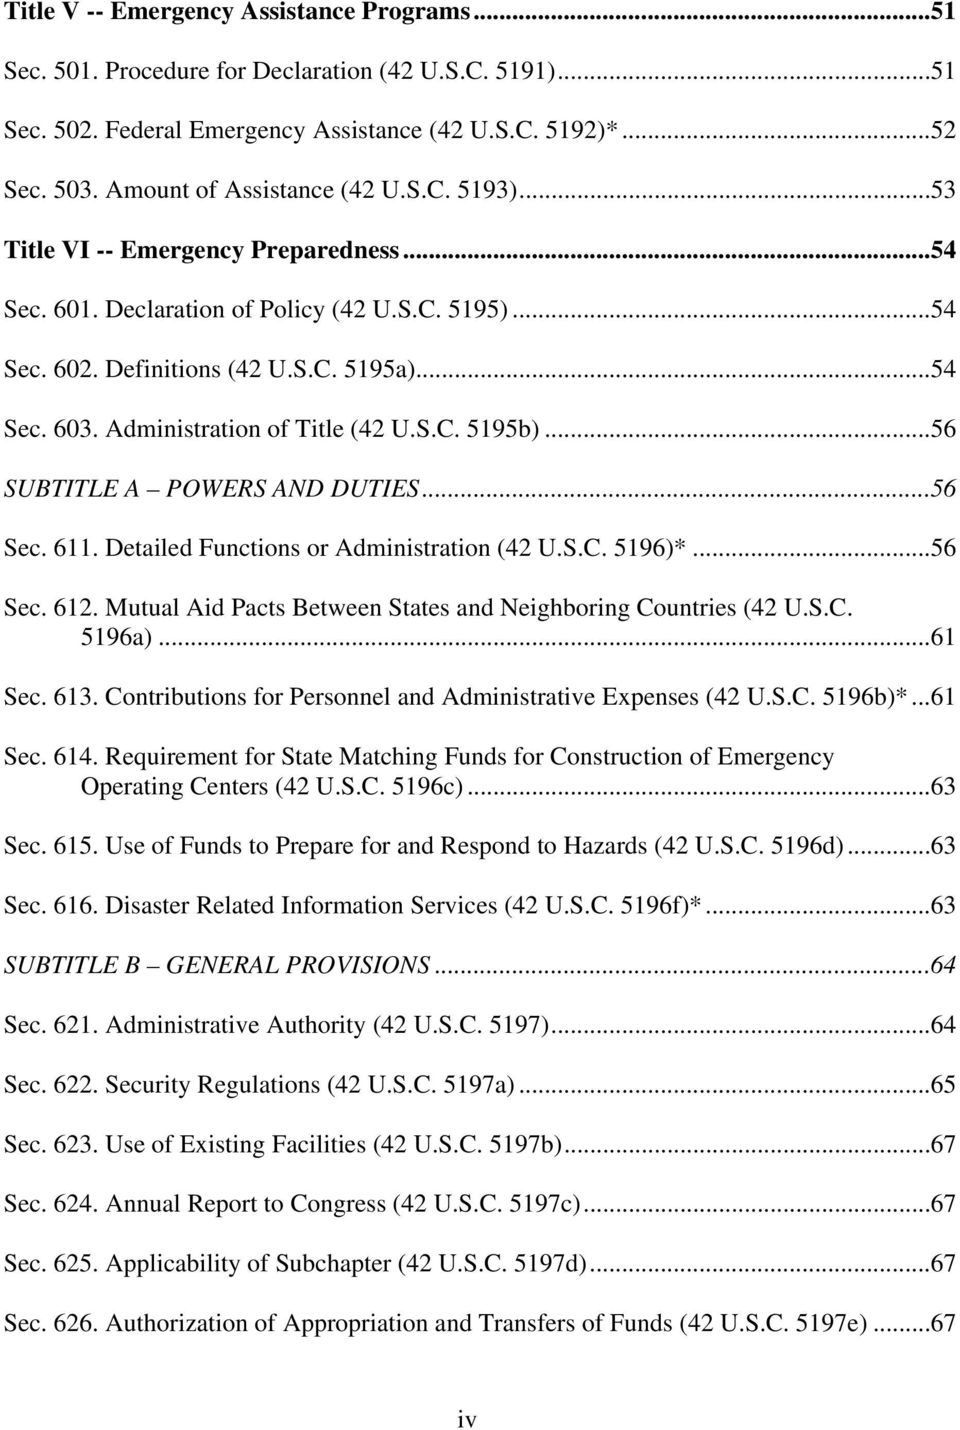 Administration of Title (42 U.S.C. 5195b)...56 SUBTITLE A POWERS AND DUTIES...56 Sec. 611. Detailed Functions or Administration (42 U.S.C. 5196)*...56 Sec. 612.